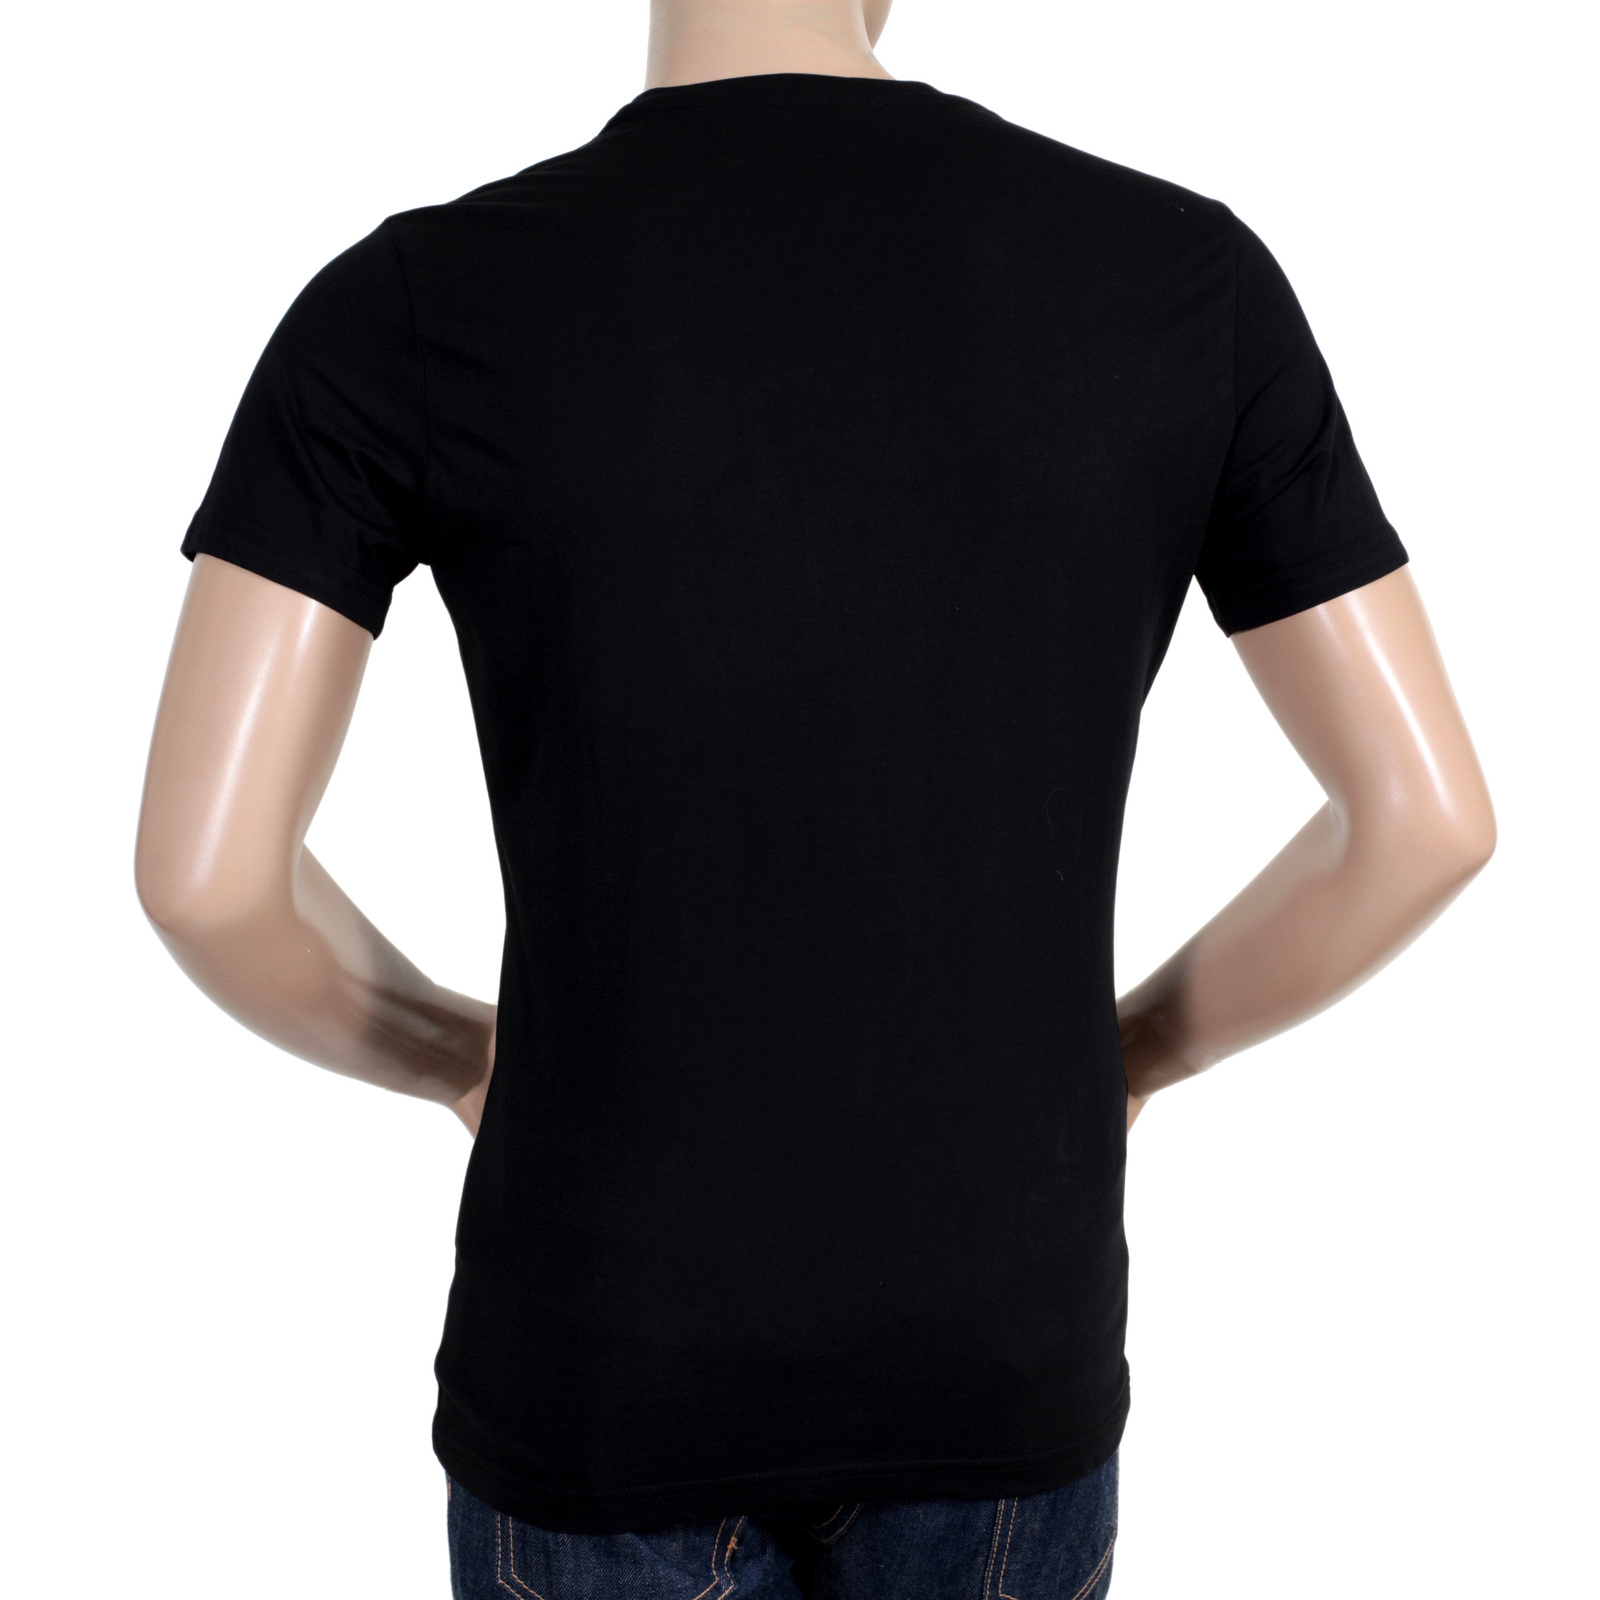 Black t shirt with white collar - Versace Crew Neck Cotton Made Short Sleeve Green Logo Printed T Shirt In Black Vers6158